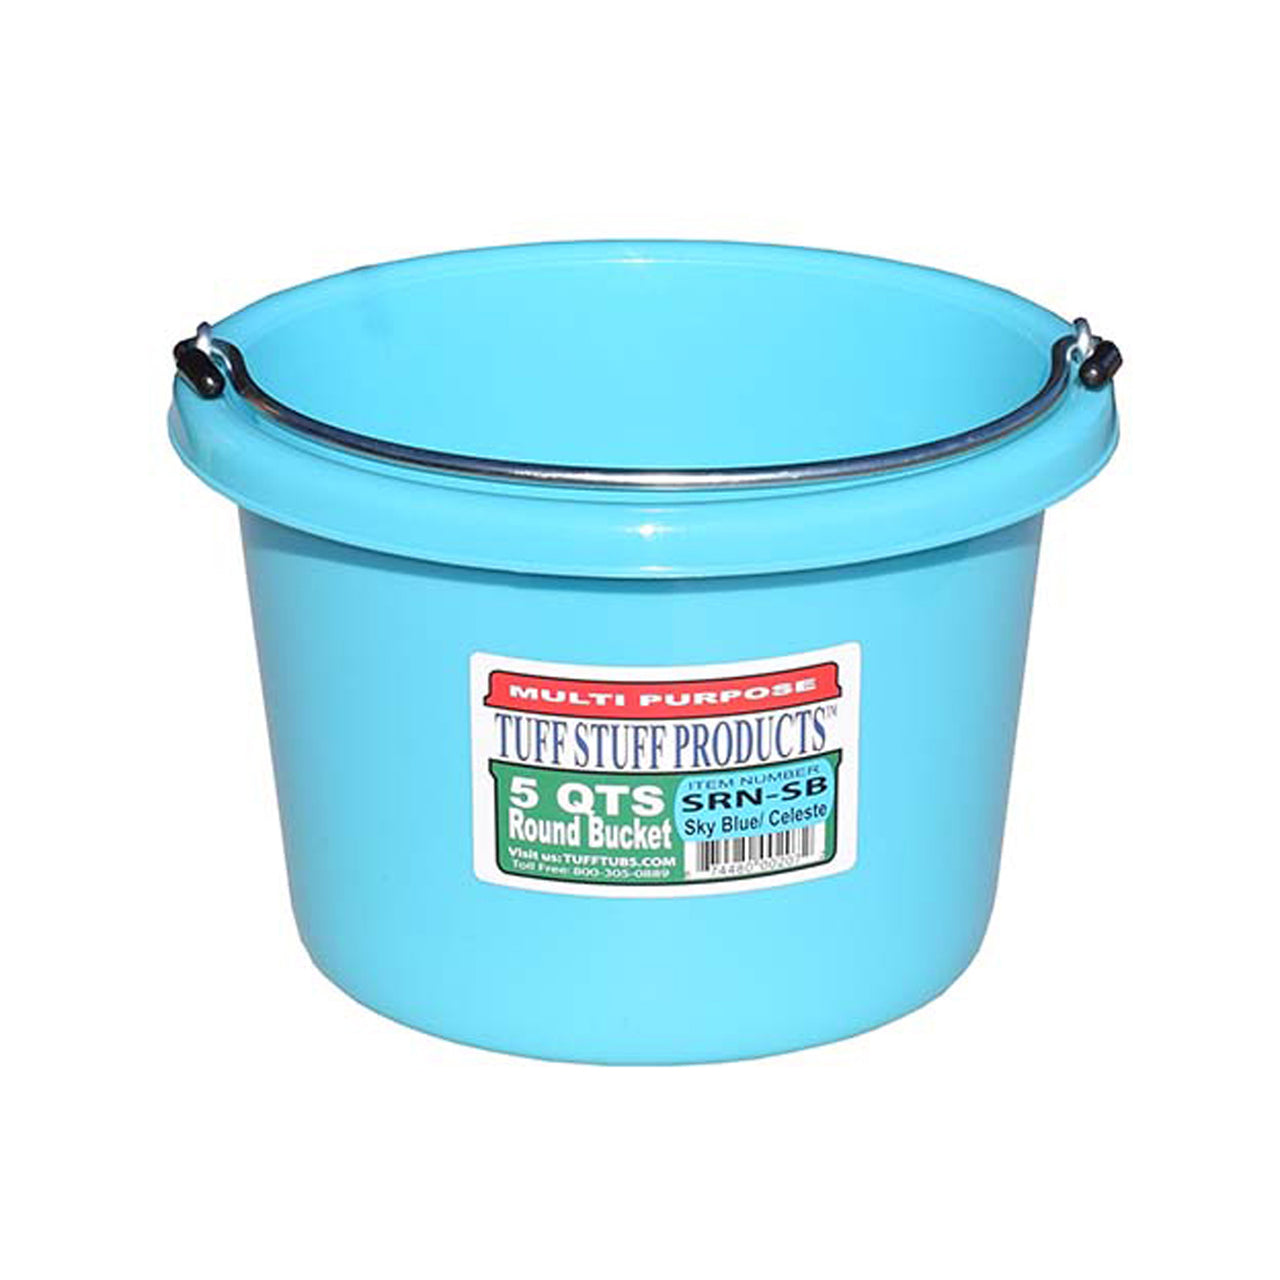 Tuff Stuff Small Round Bucket 5 Qts (Sky Blue) - Buckets Pails Feeders Scoops Tubs Bottles Tuff Stuff - Canada